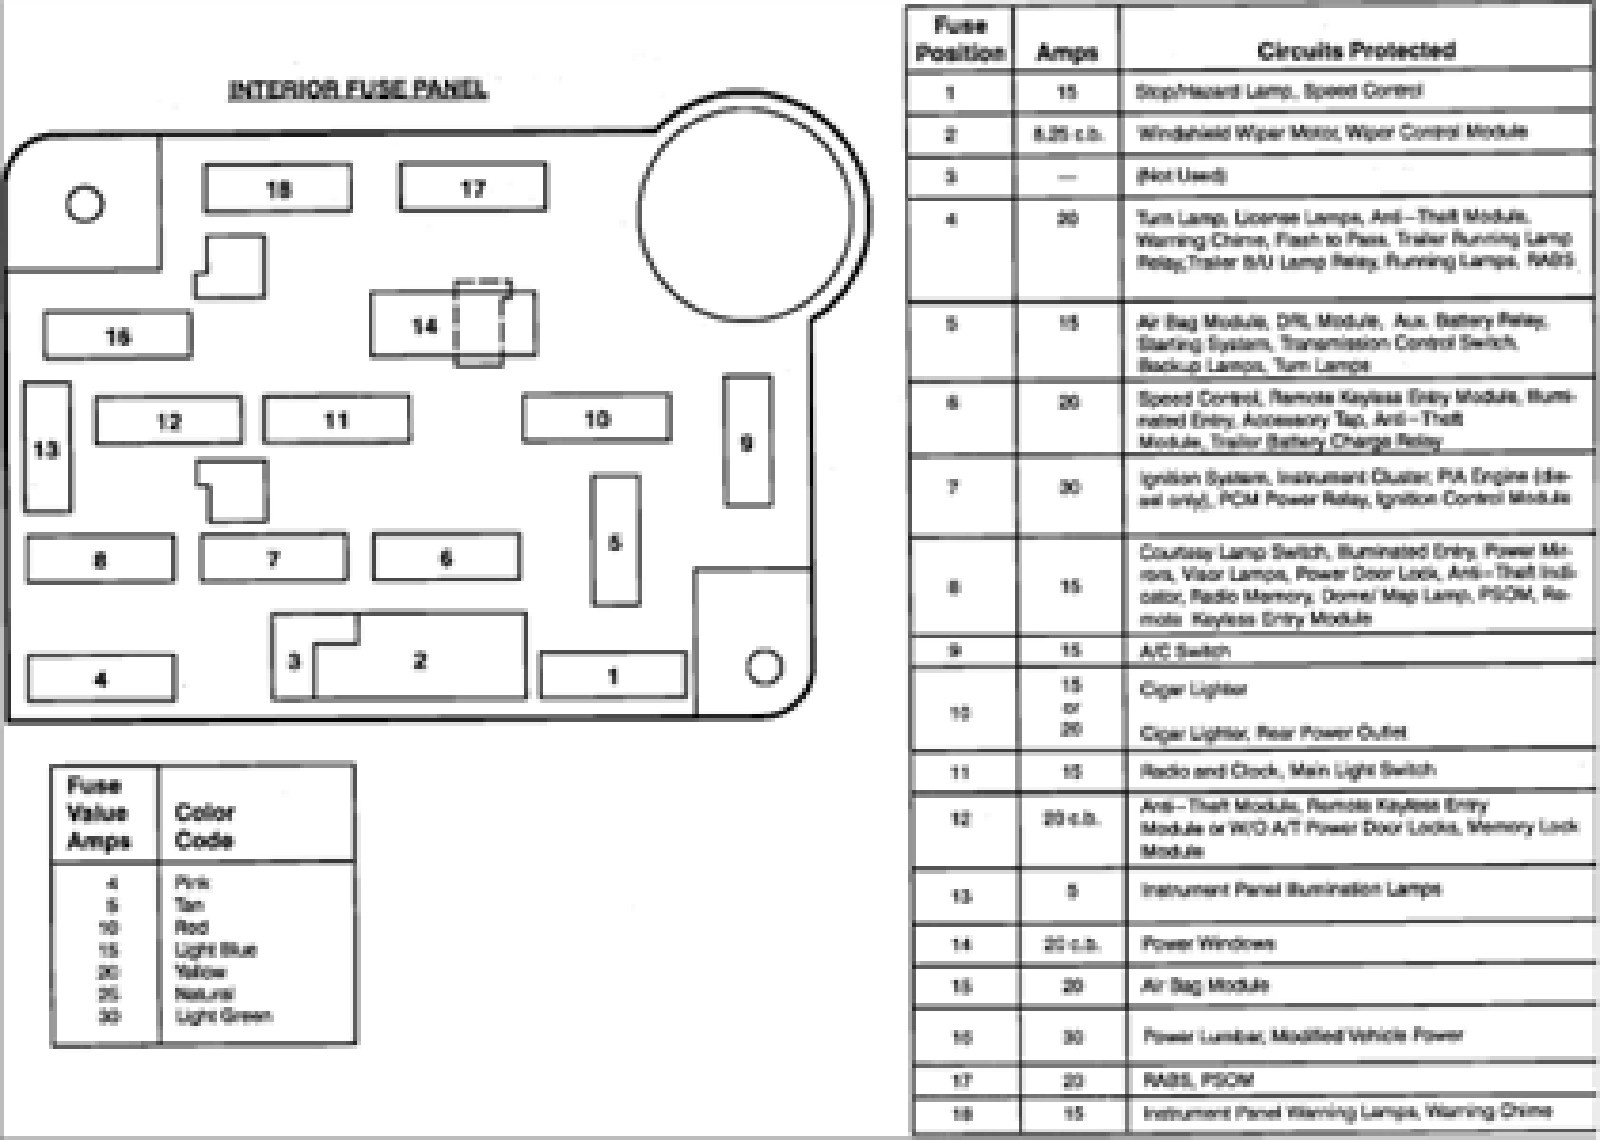 hight resolution of 1991 gmc fuse box diagram wiring diagram blogs 1992 gmc sonoma fuse box diagram 1991 gmc